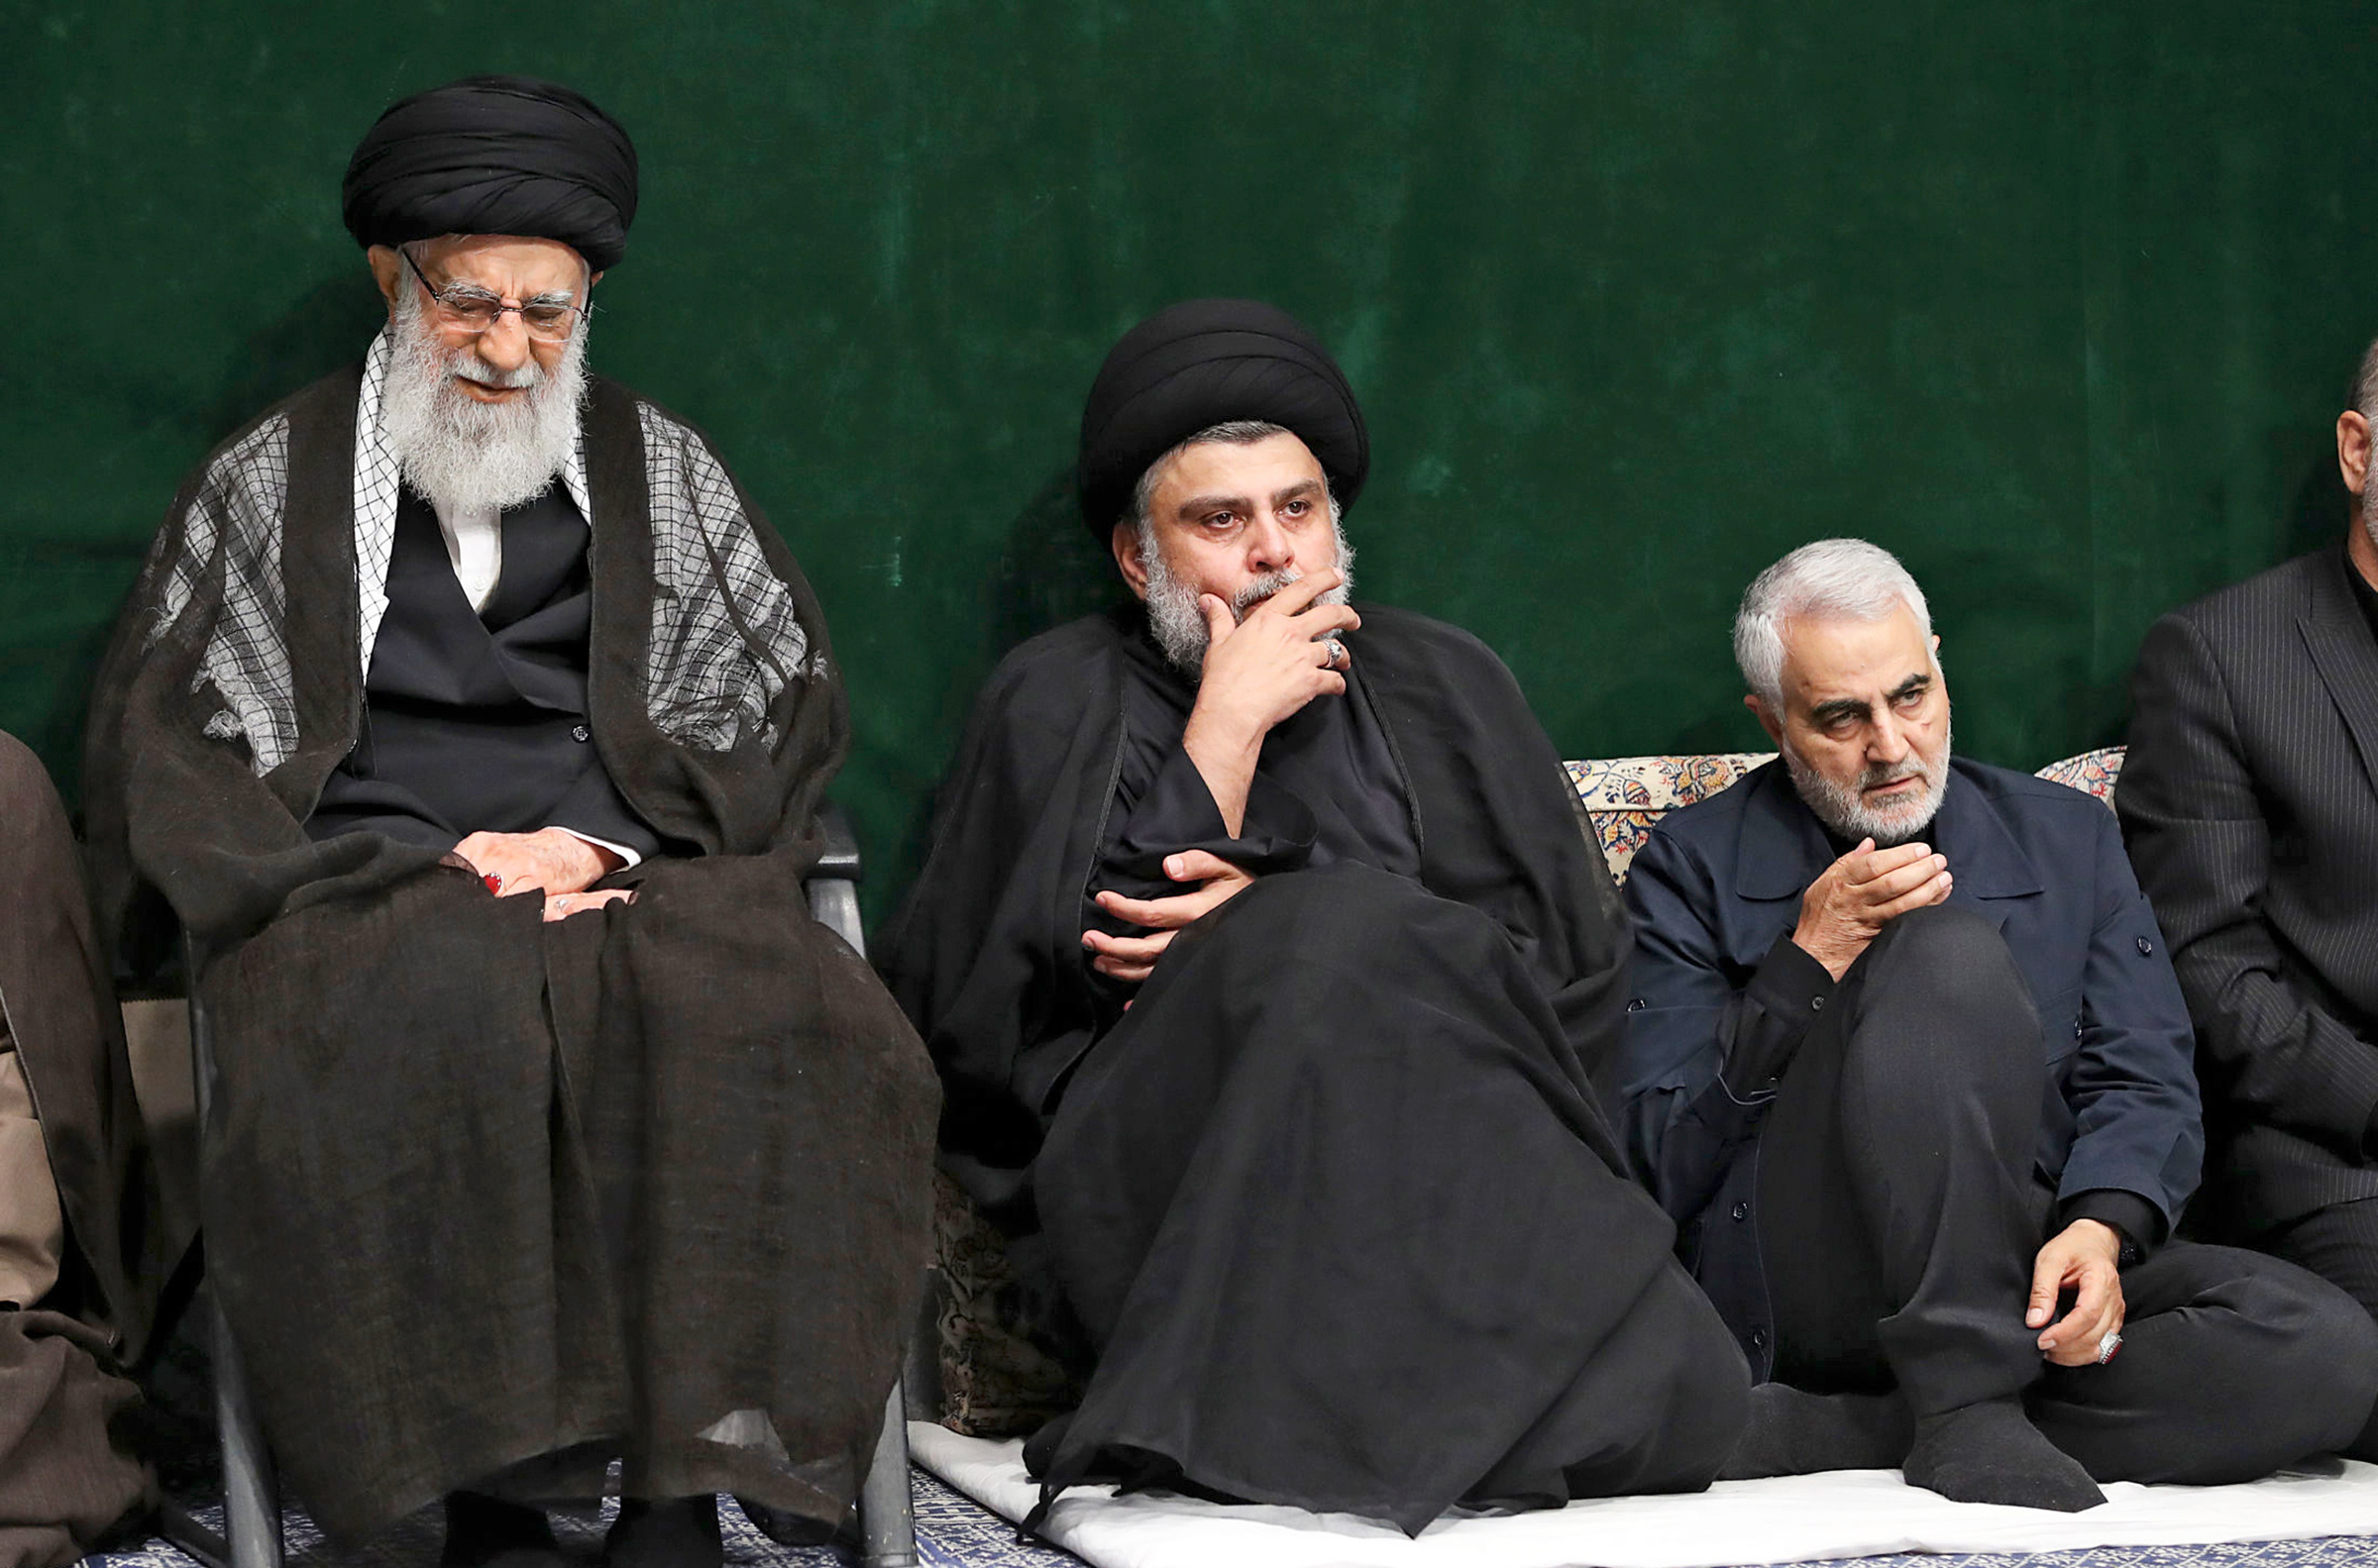 Khamenei and Qasem Soleimani flank Iraqi cleric Muqtada al-Sadr at a Tehran mourning ceremony on Sept. 10